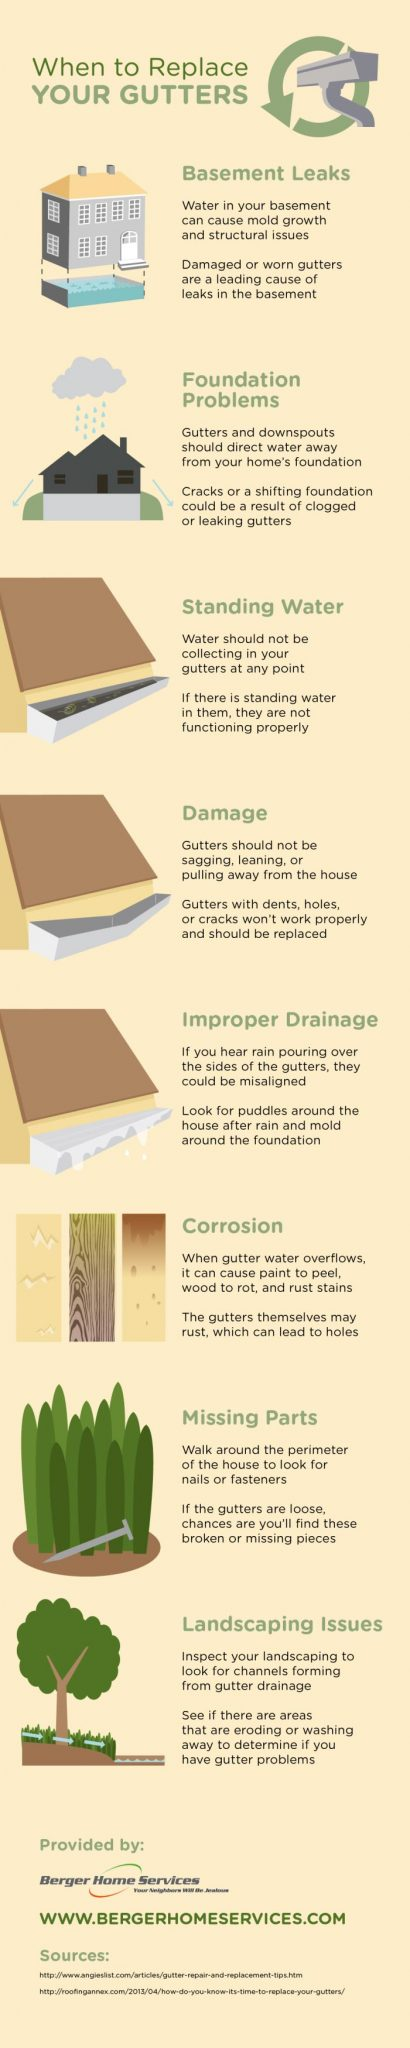 when to replace gutters infographic